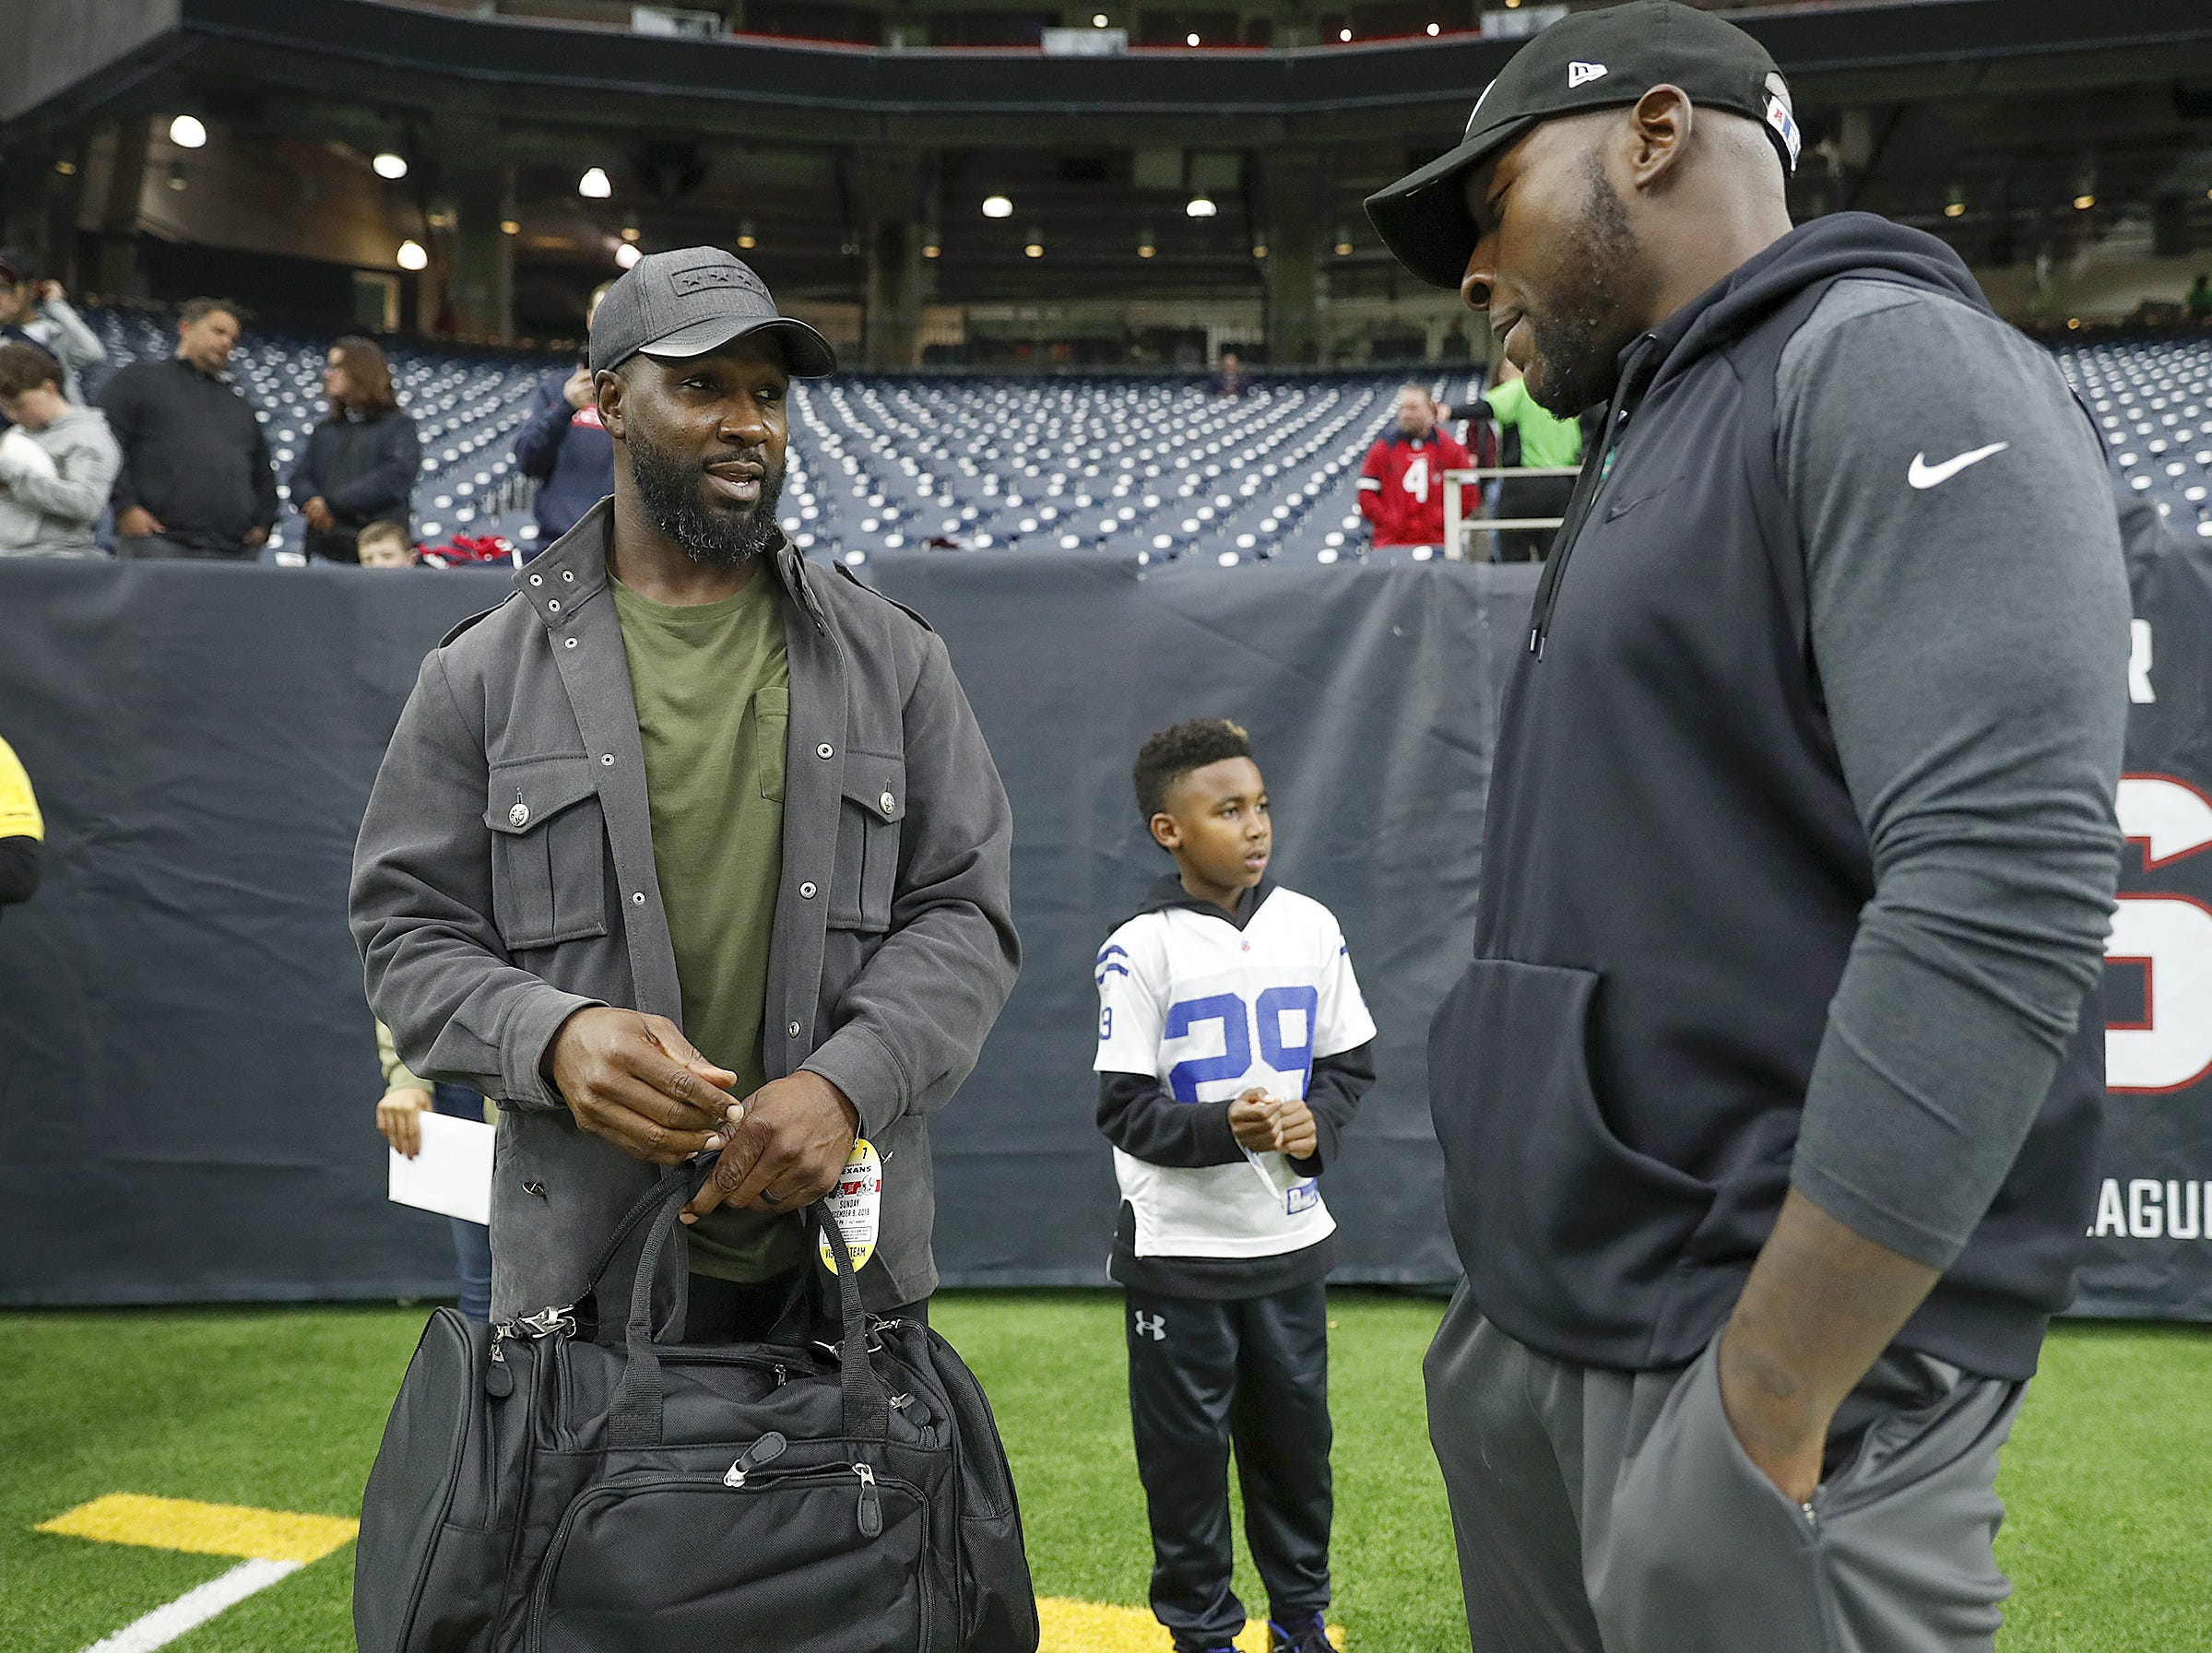 Former Indianapolis Colts running back Joseph Addai talks to his former teammate Robert Mathis, right, before the start of their game against the Houston Texans at NRG Stadium in Houston, TX., on Sunday, Dec. 9, 2018.